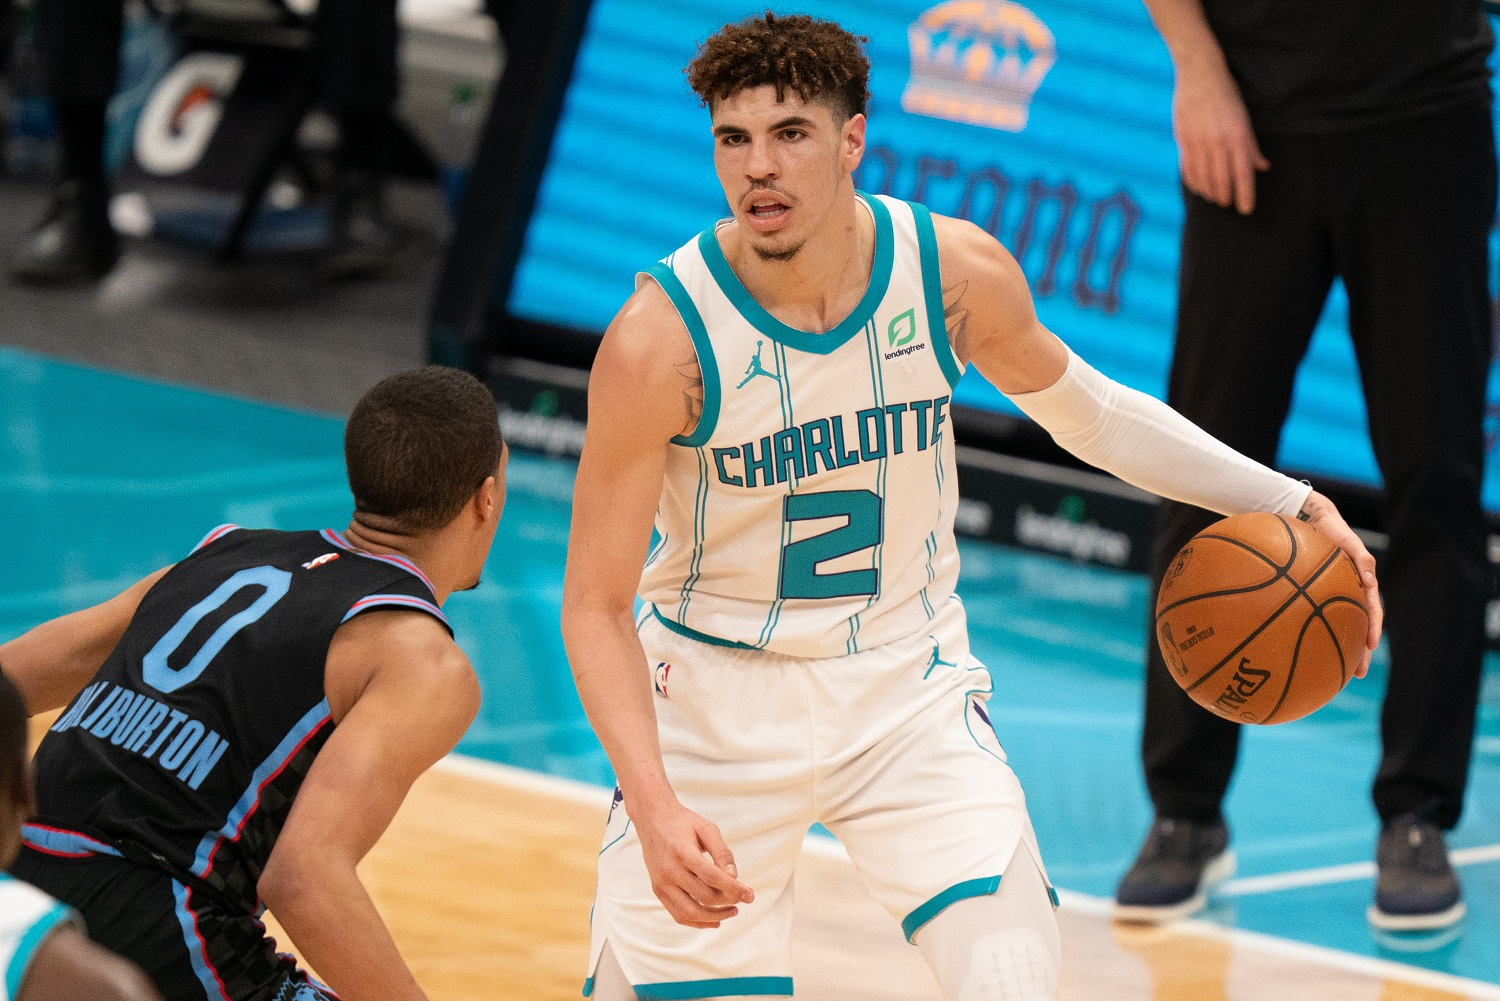 LaMelo Ball was on his way to likely NBA Rookie of the Year honors with the Charlotte Hornets before his injury.